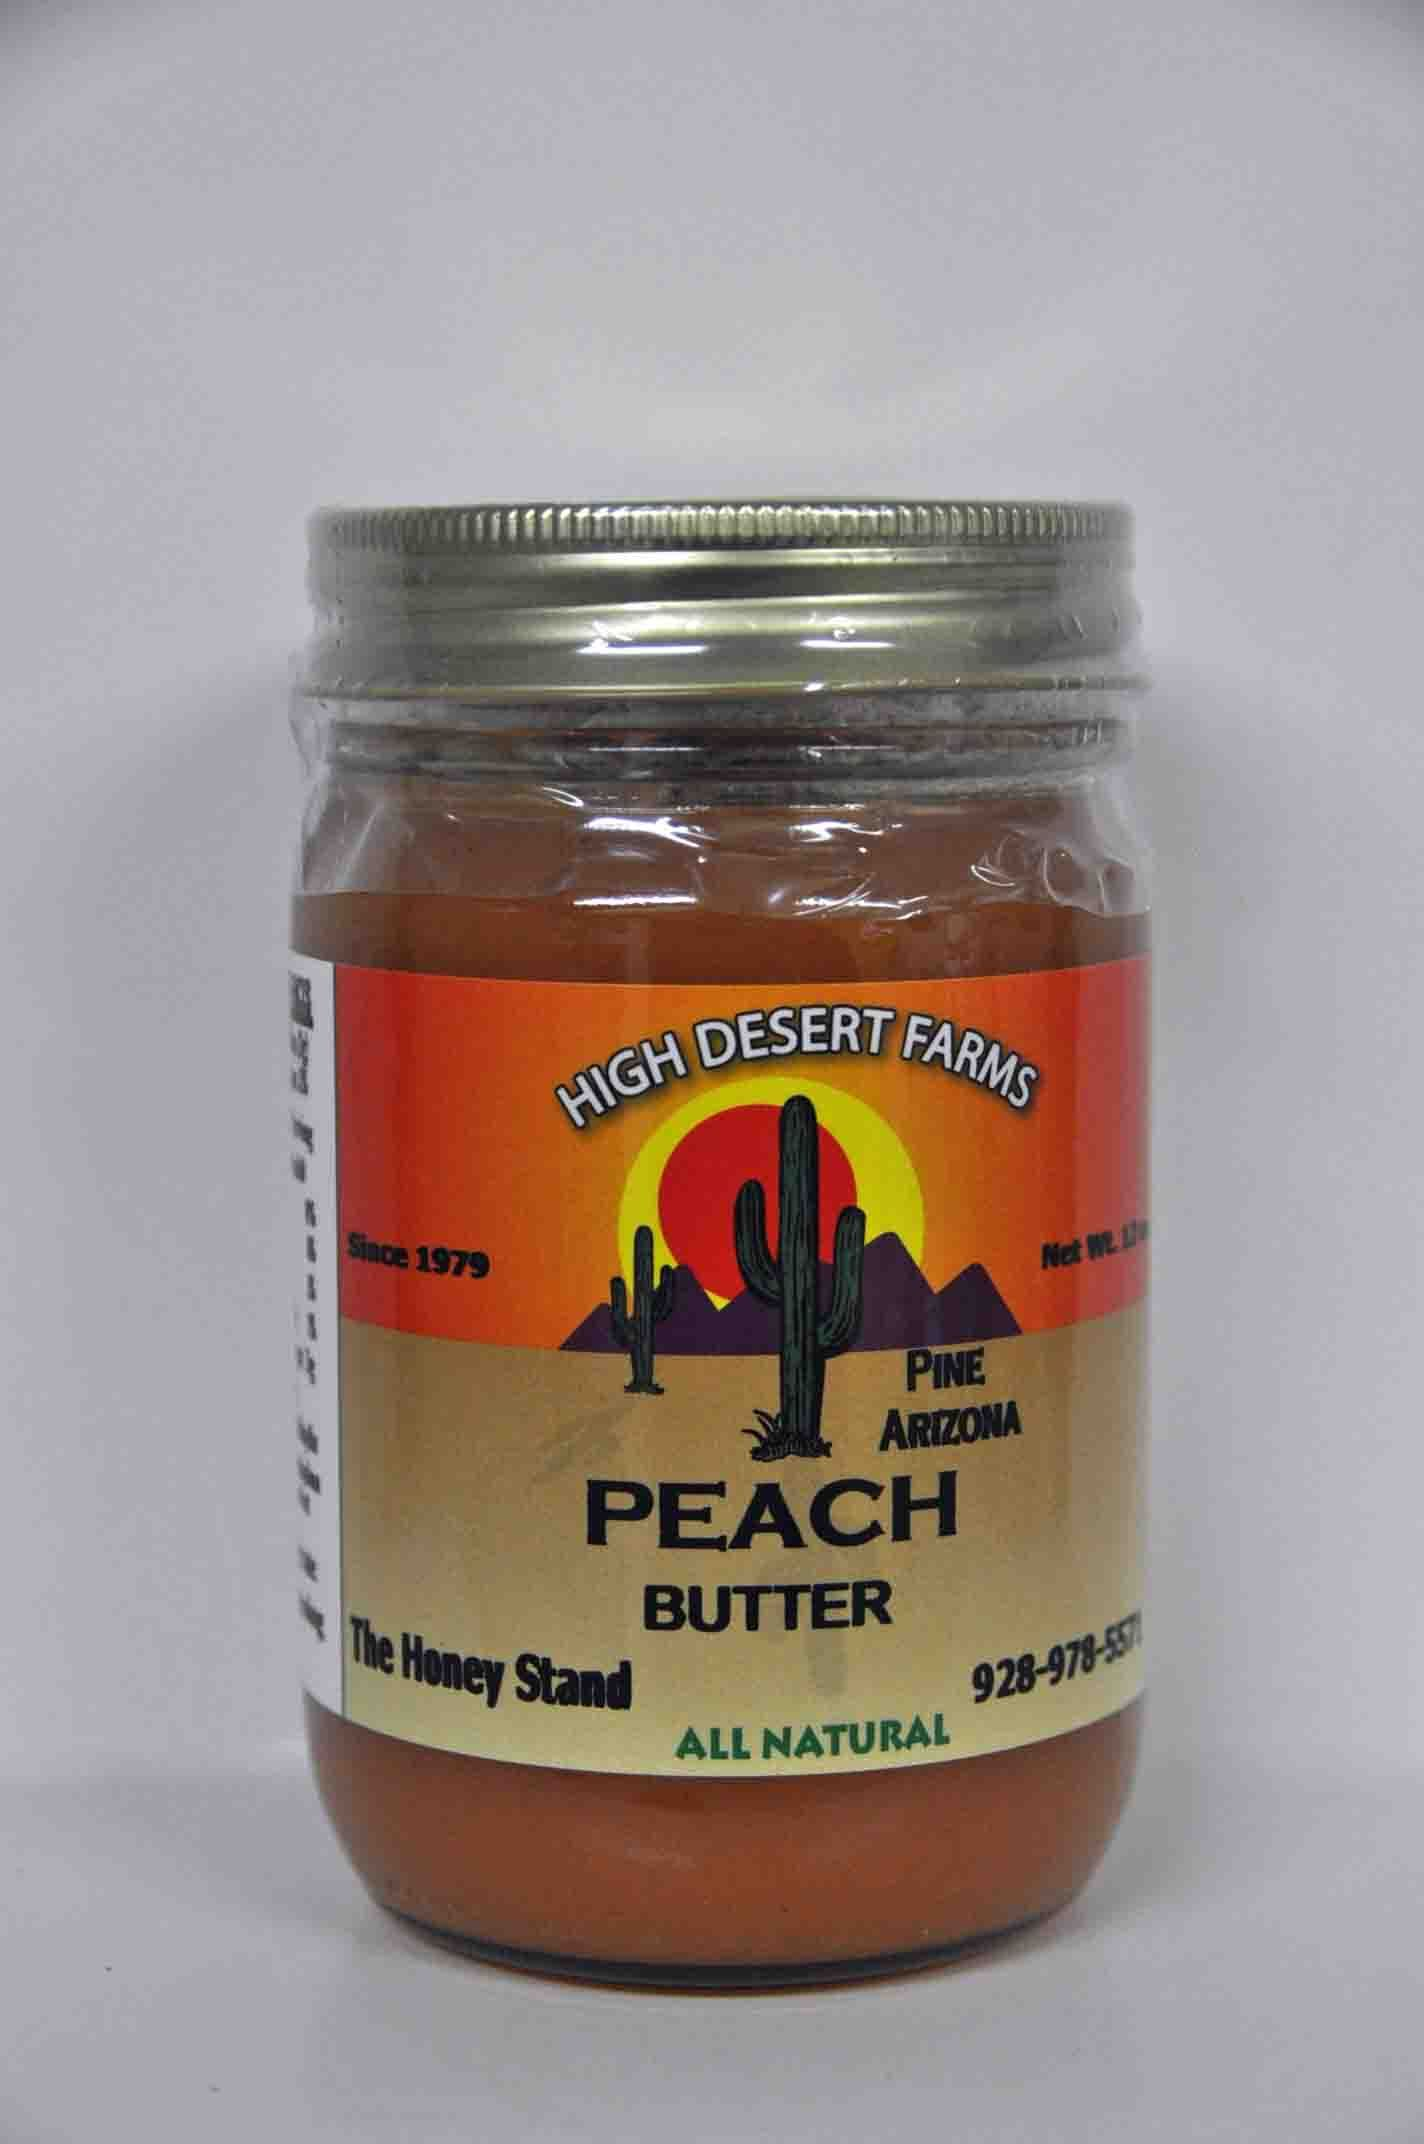 Peach Butter | The Honey Stand